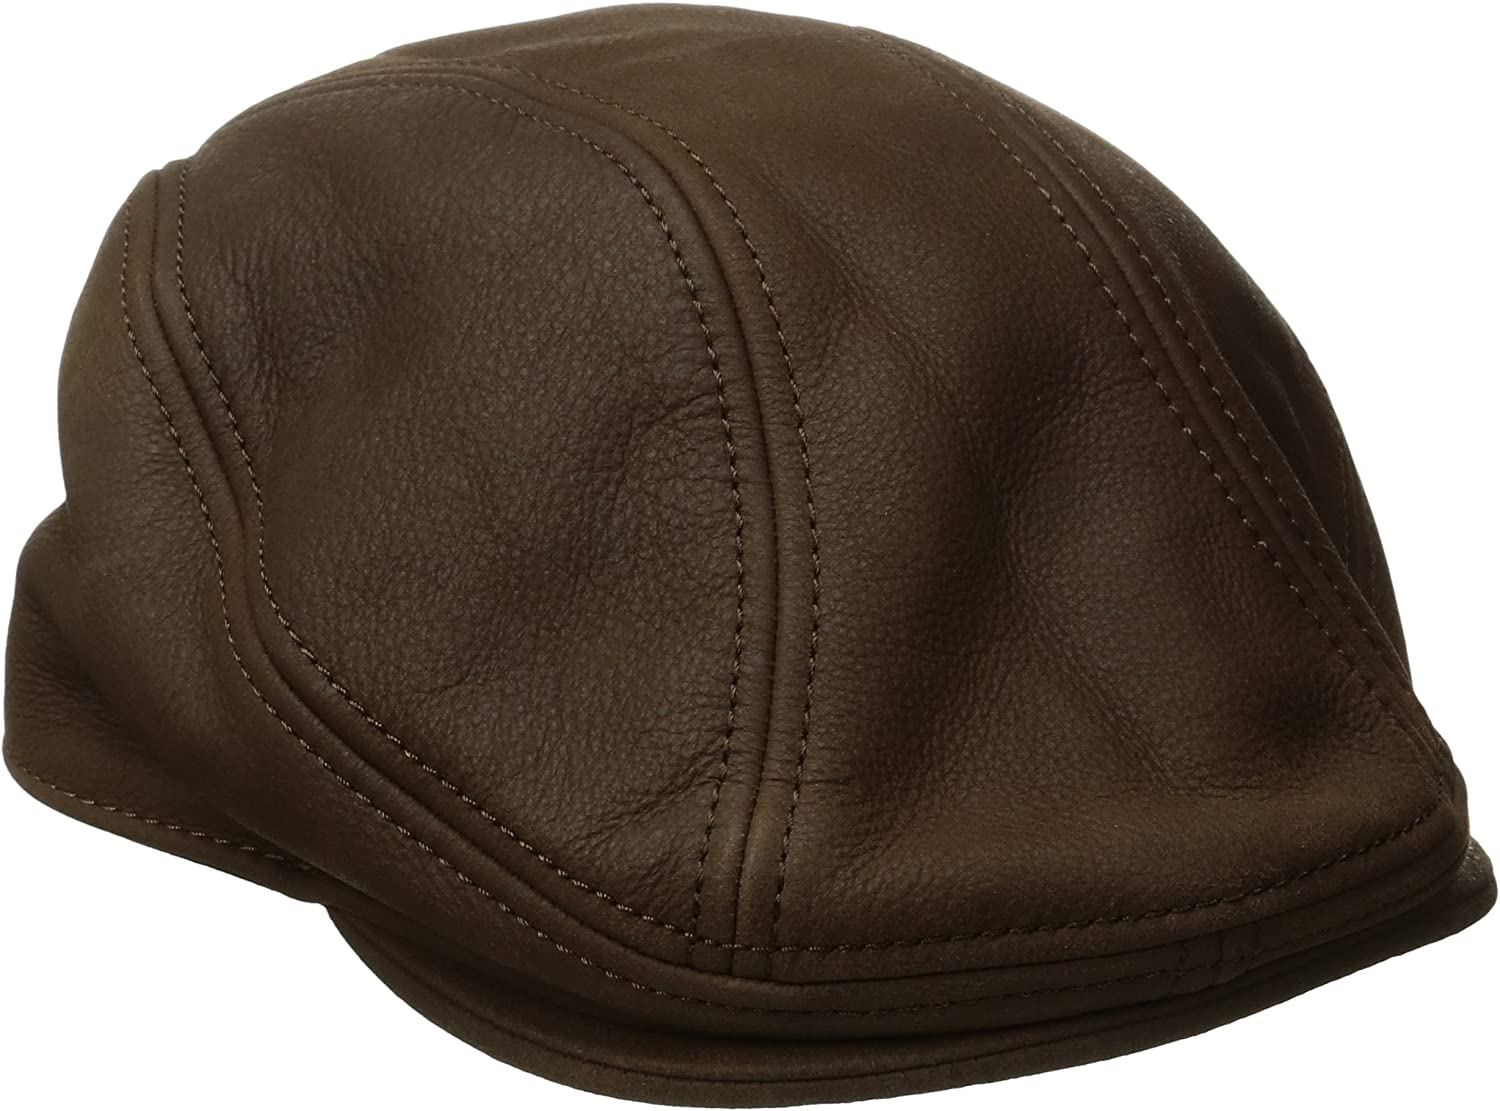 Stetson Men's Oily Timber Leather Ivy Cap